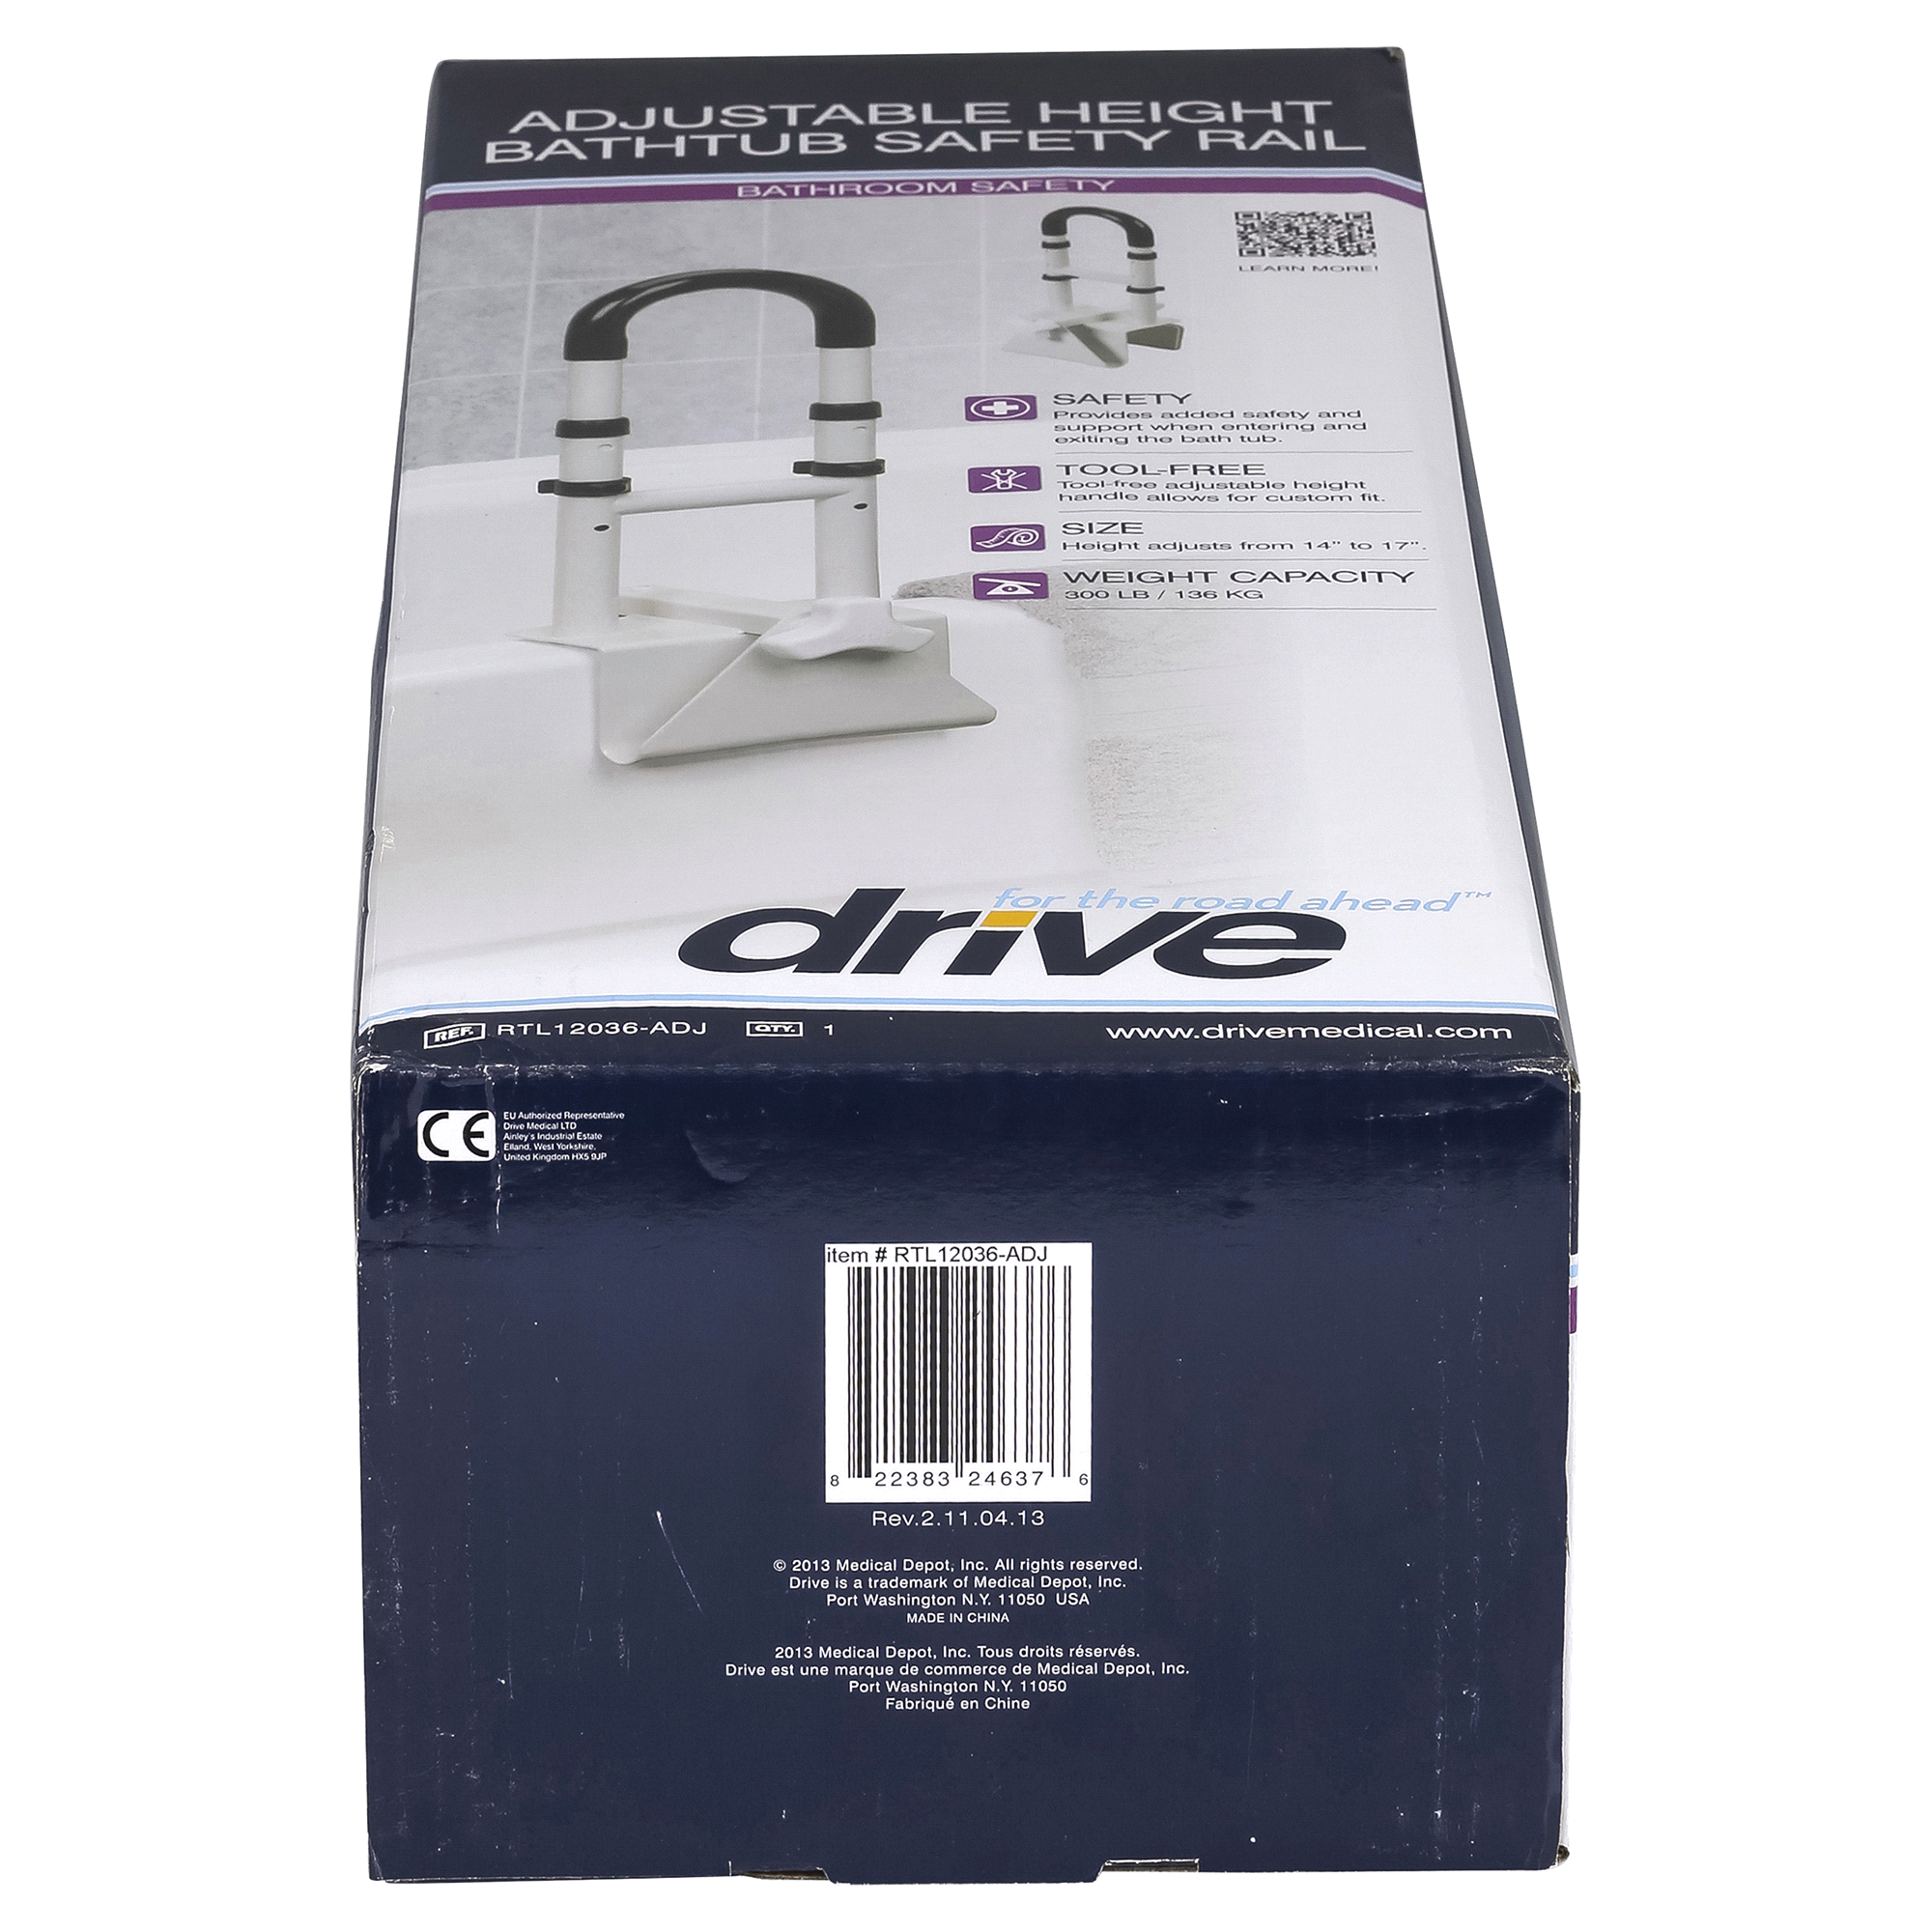 Drive Medical Bathtub Safety Rail Clamp-On Adjustable Height White ...